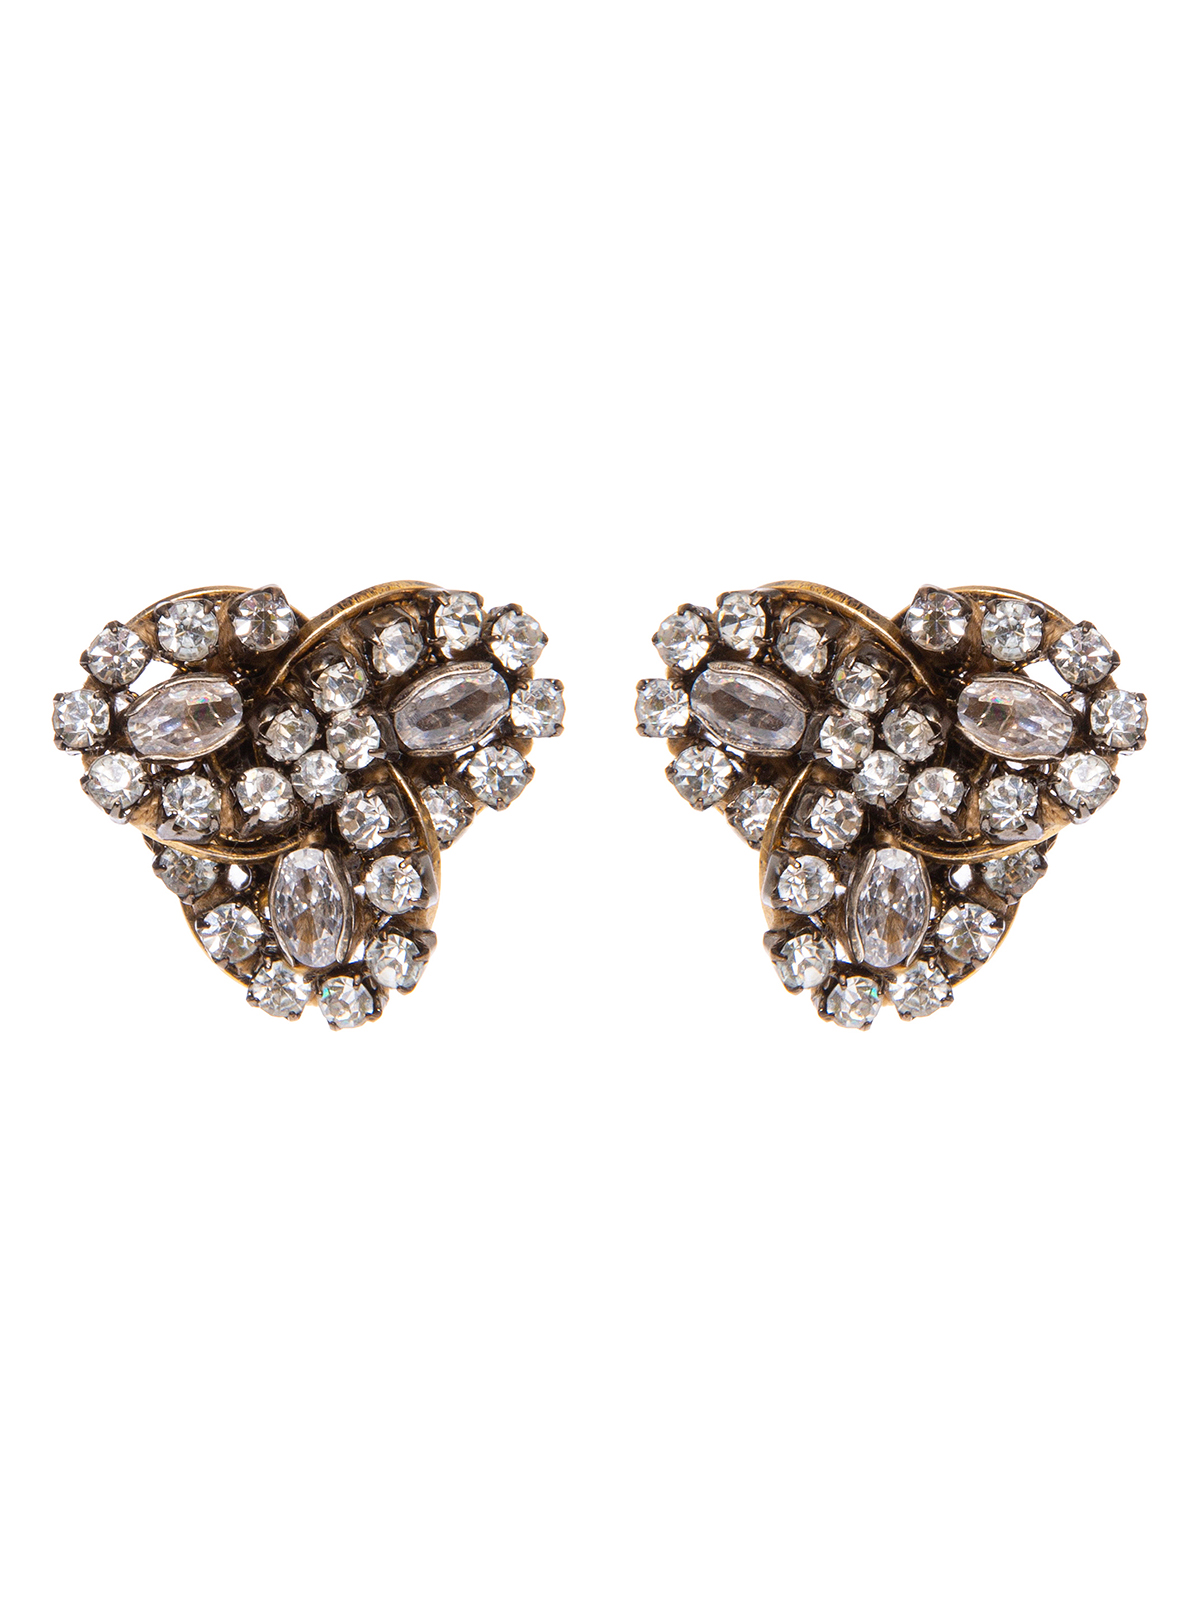 Earrings with crystal petals